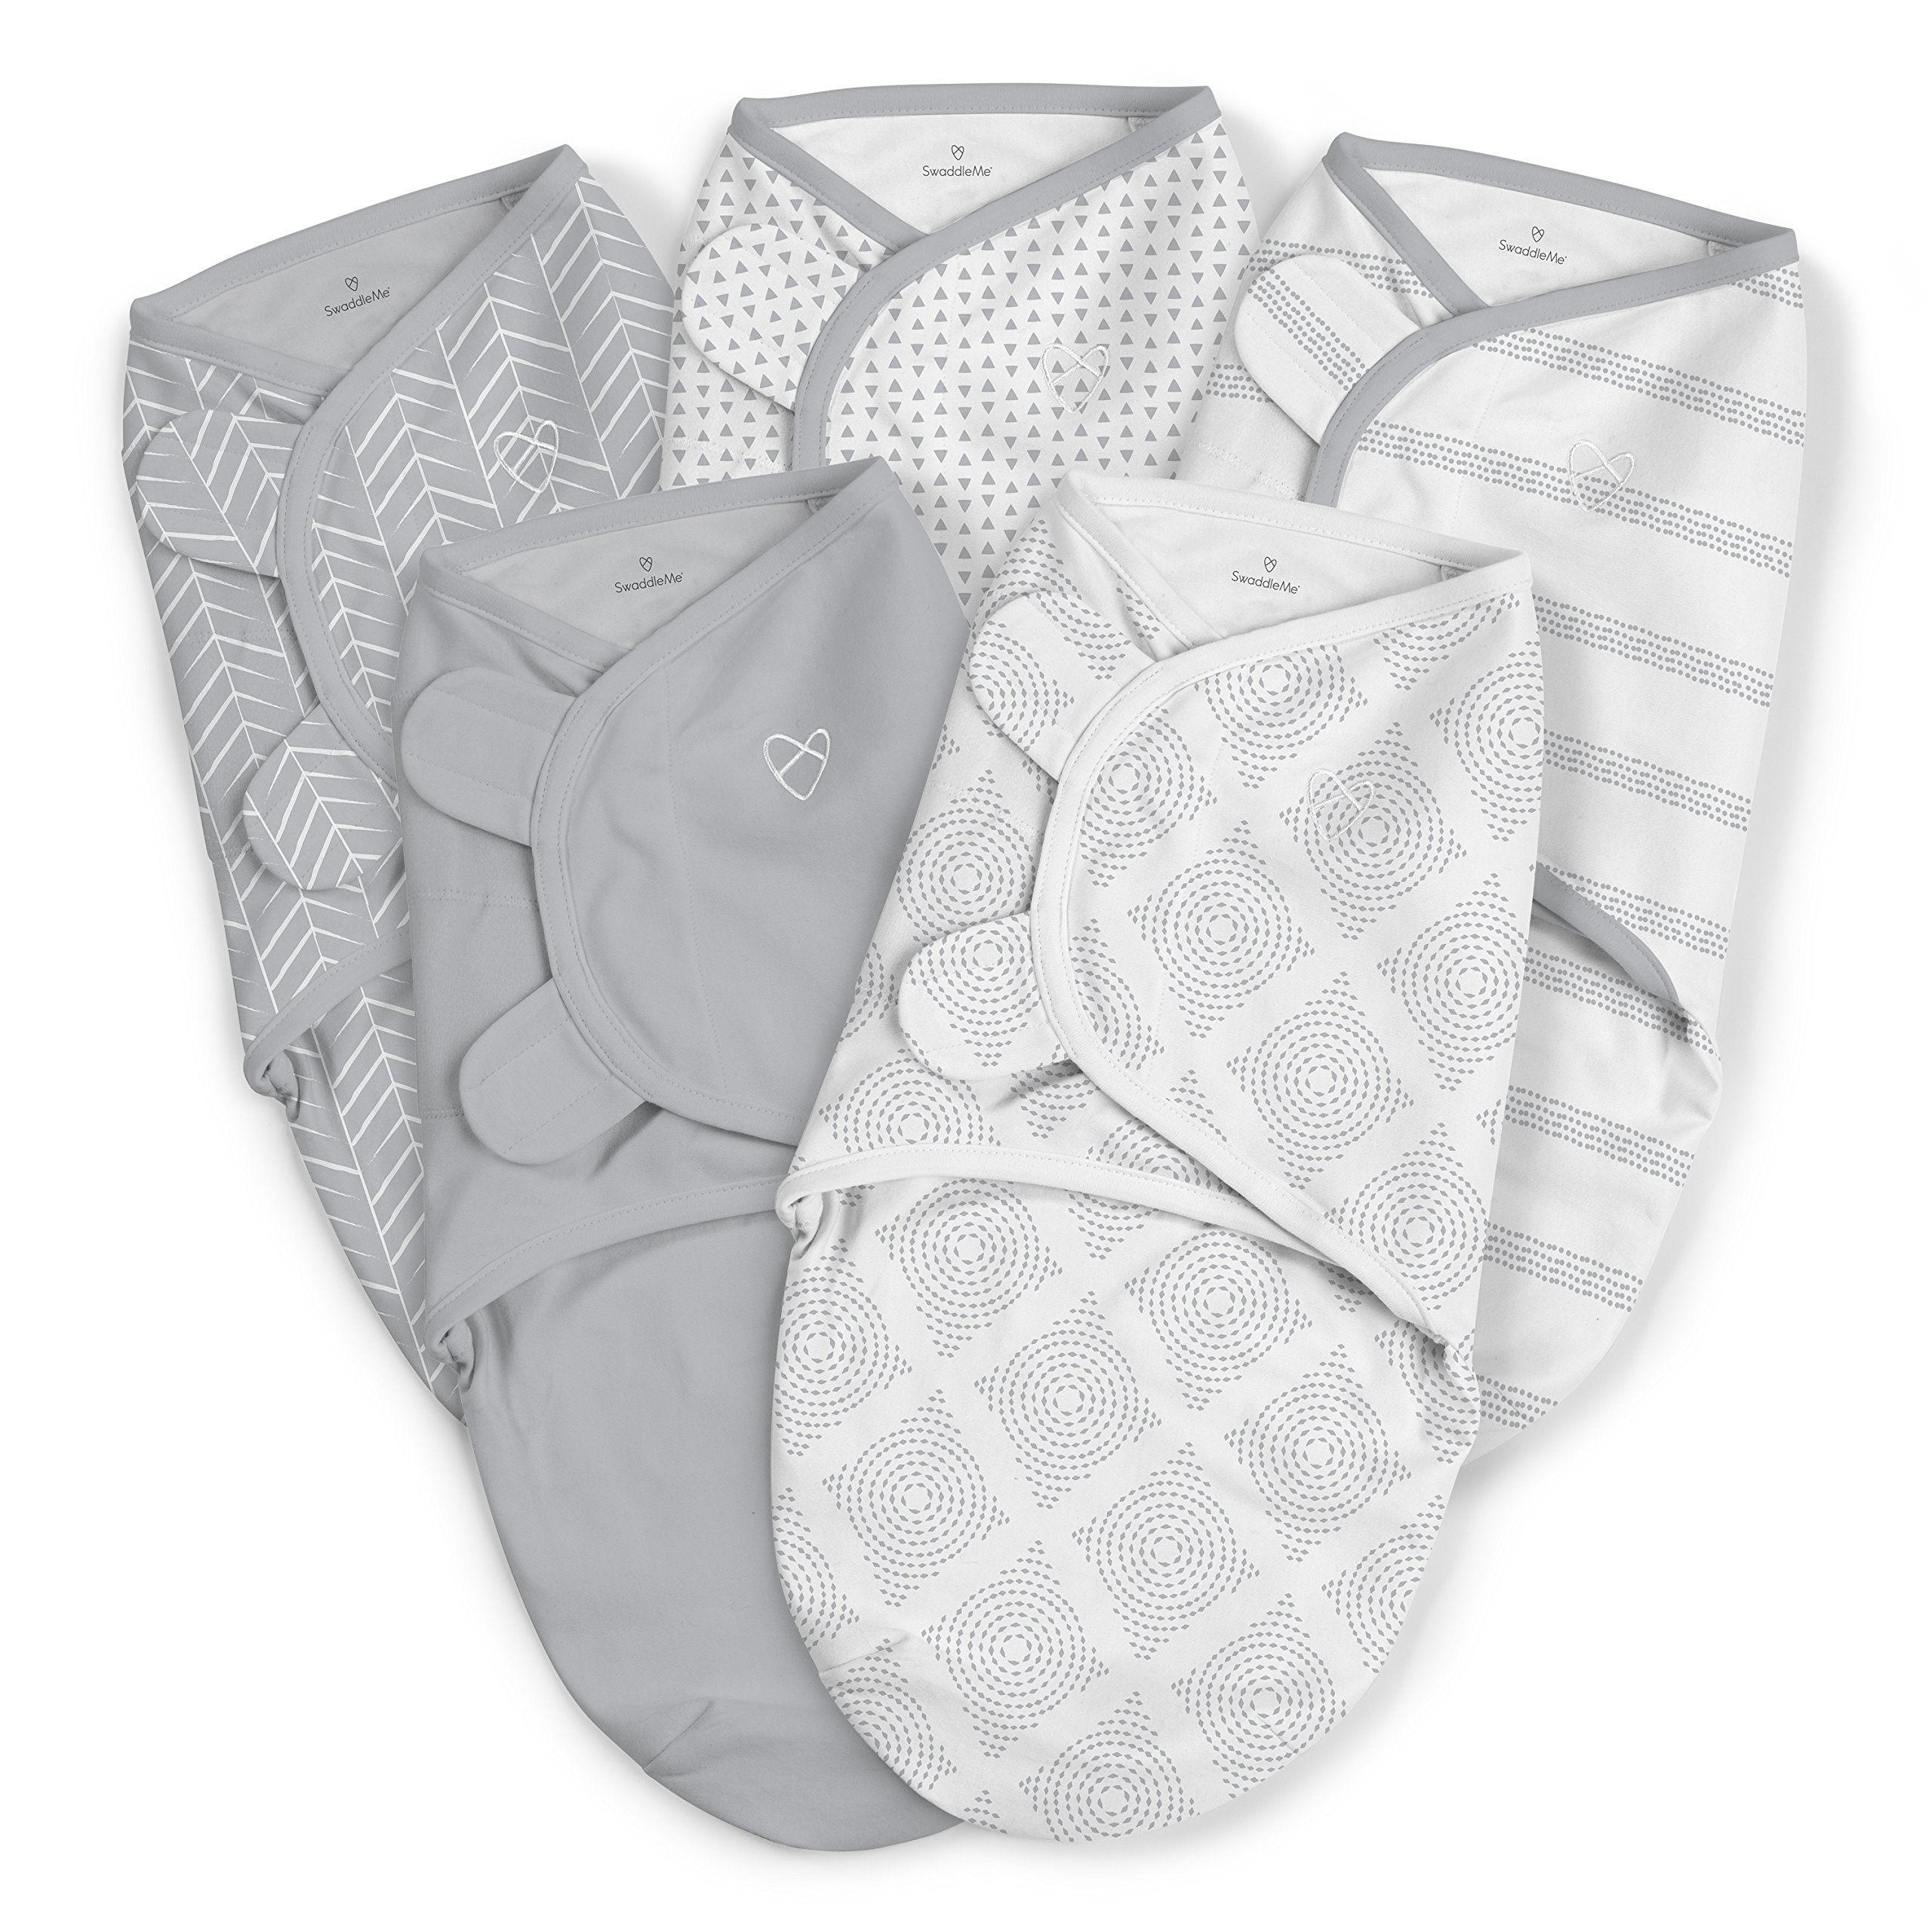 SwaddleMe Original Swaddle 5-PK, Grays for Days, Small by SwaddleMe